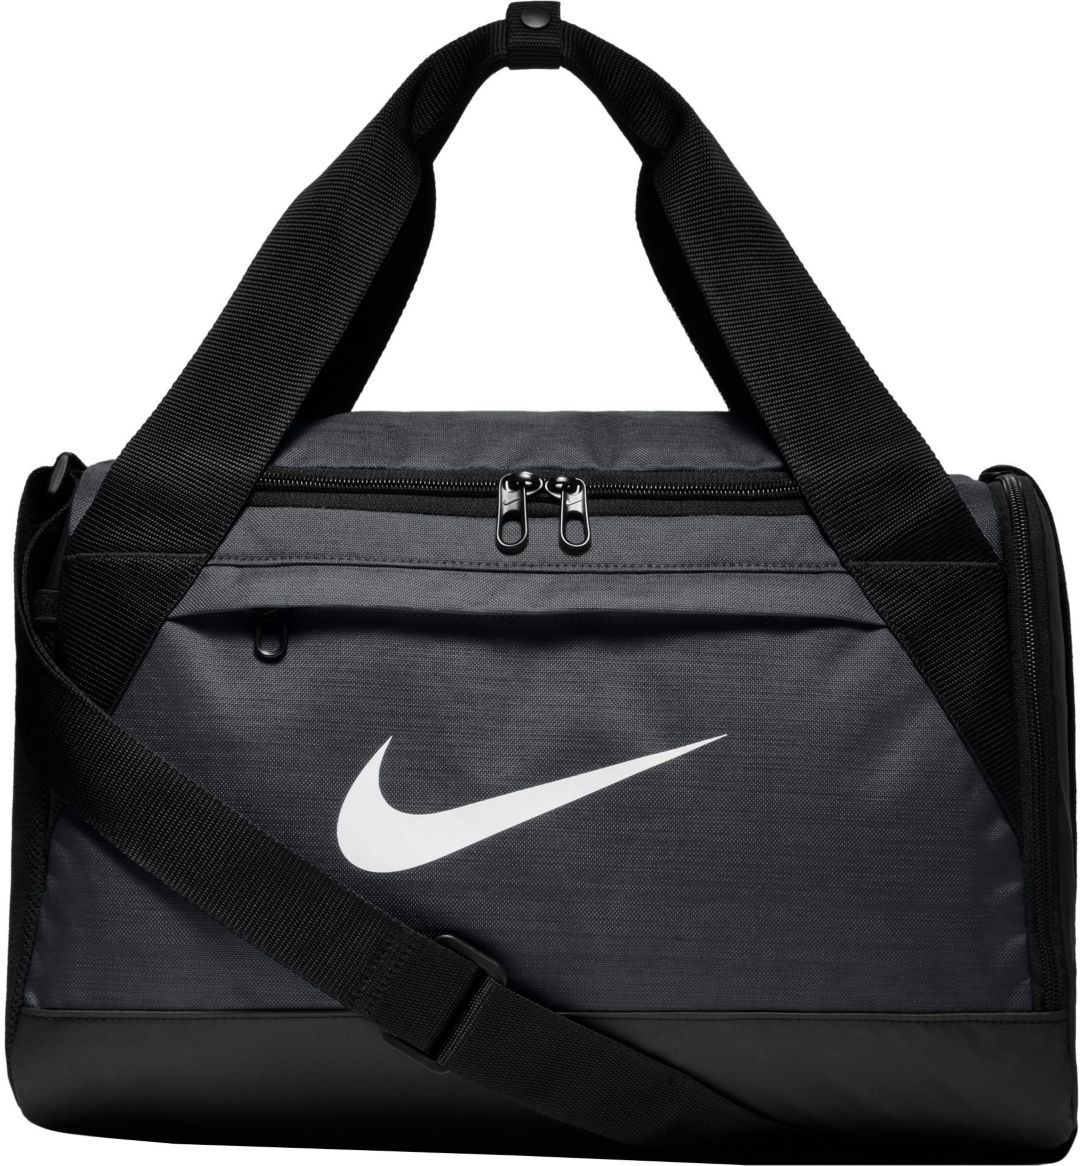 775a70ced5 Nike Brasilia Extra Small Training Duffle Bag | DICK'S Sporting Goods